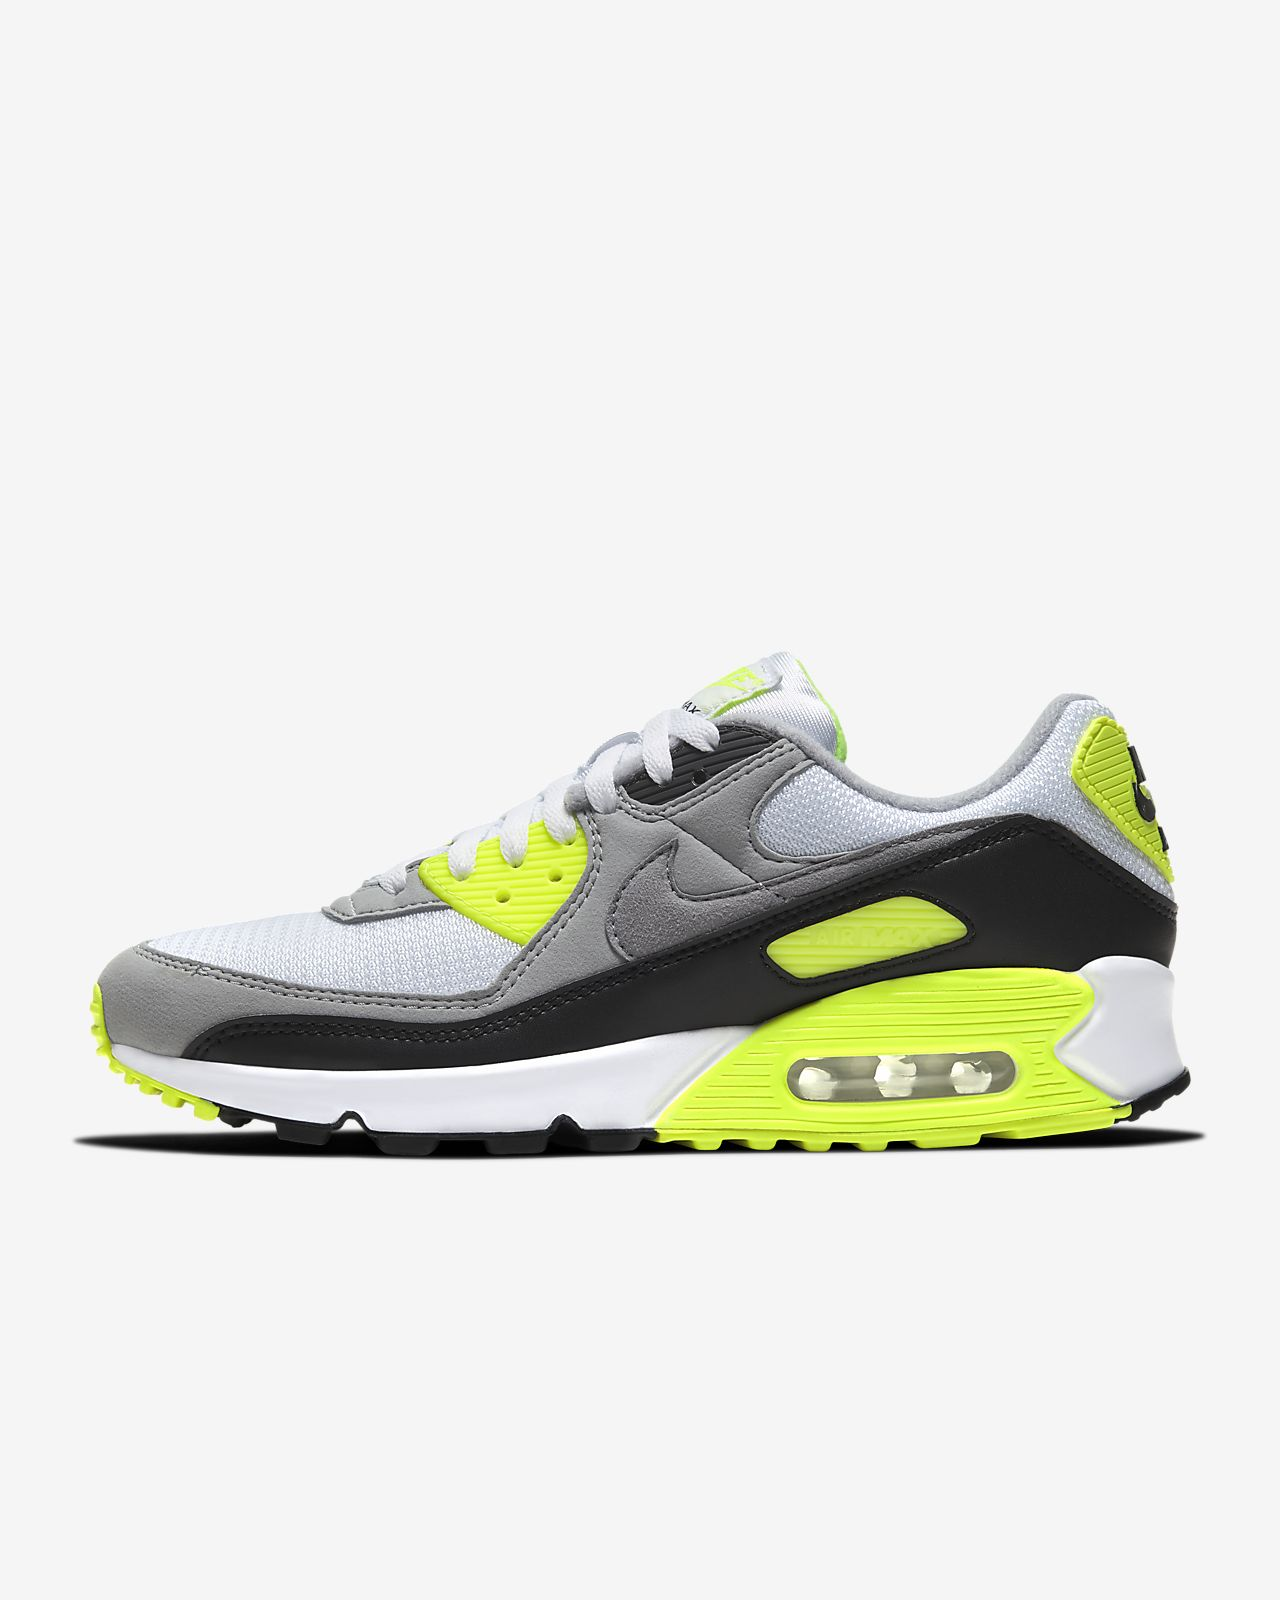 Nike Air Max Thea Trainers in Yellow